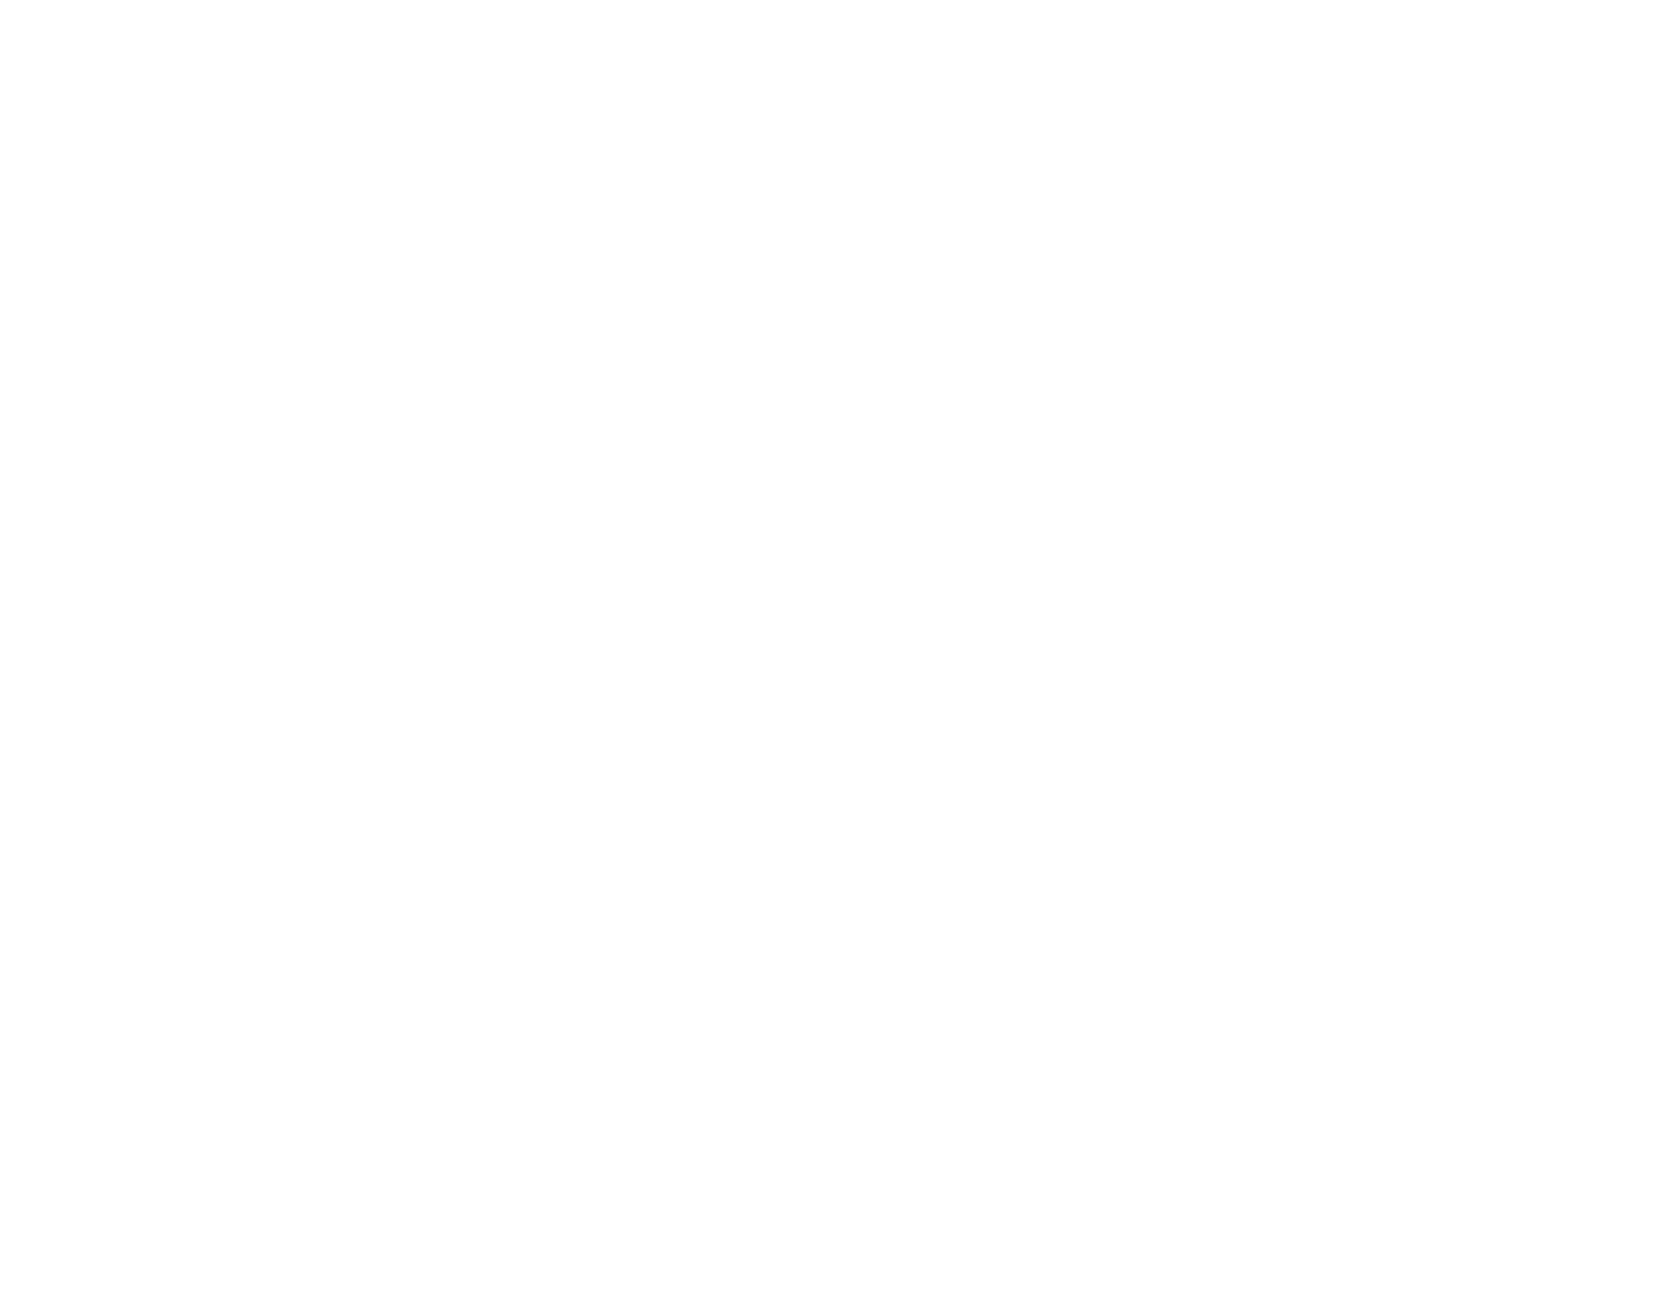 Cotswold 113 - cover image